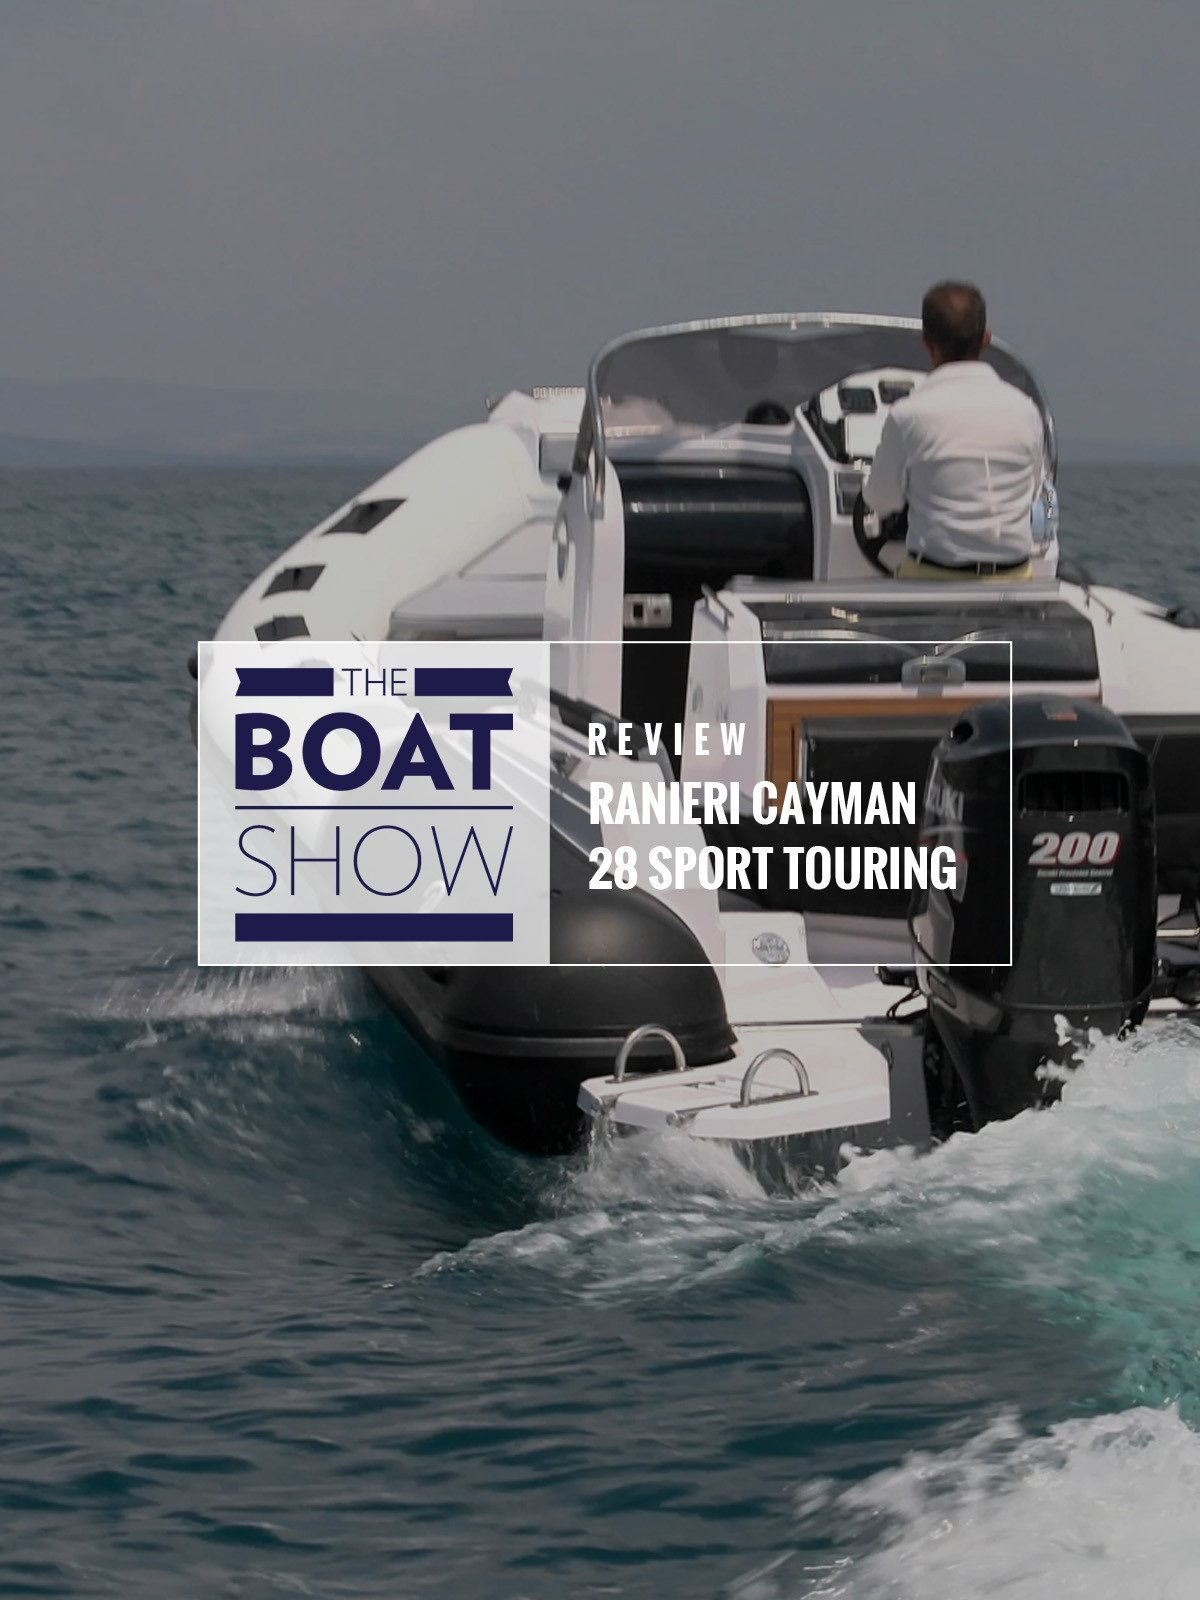 Review: Ranieri Cayman 28 Sport Touring - The Boat Show on Amazon Prime Video UK